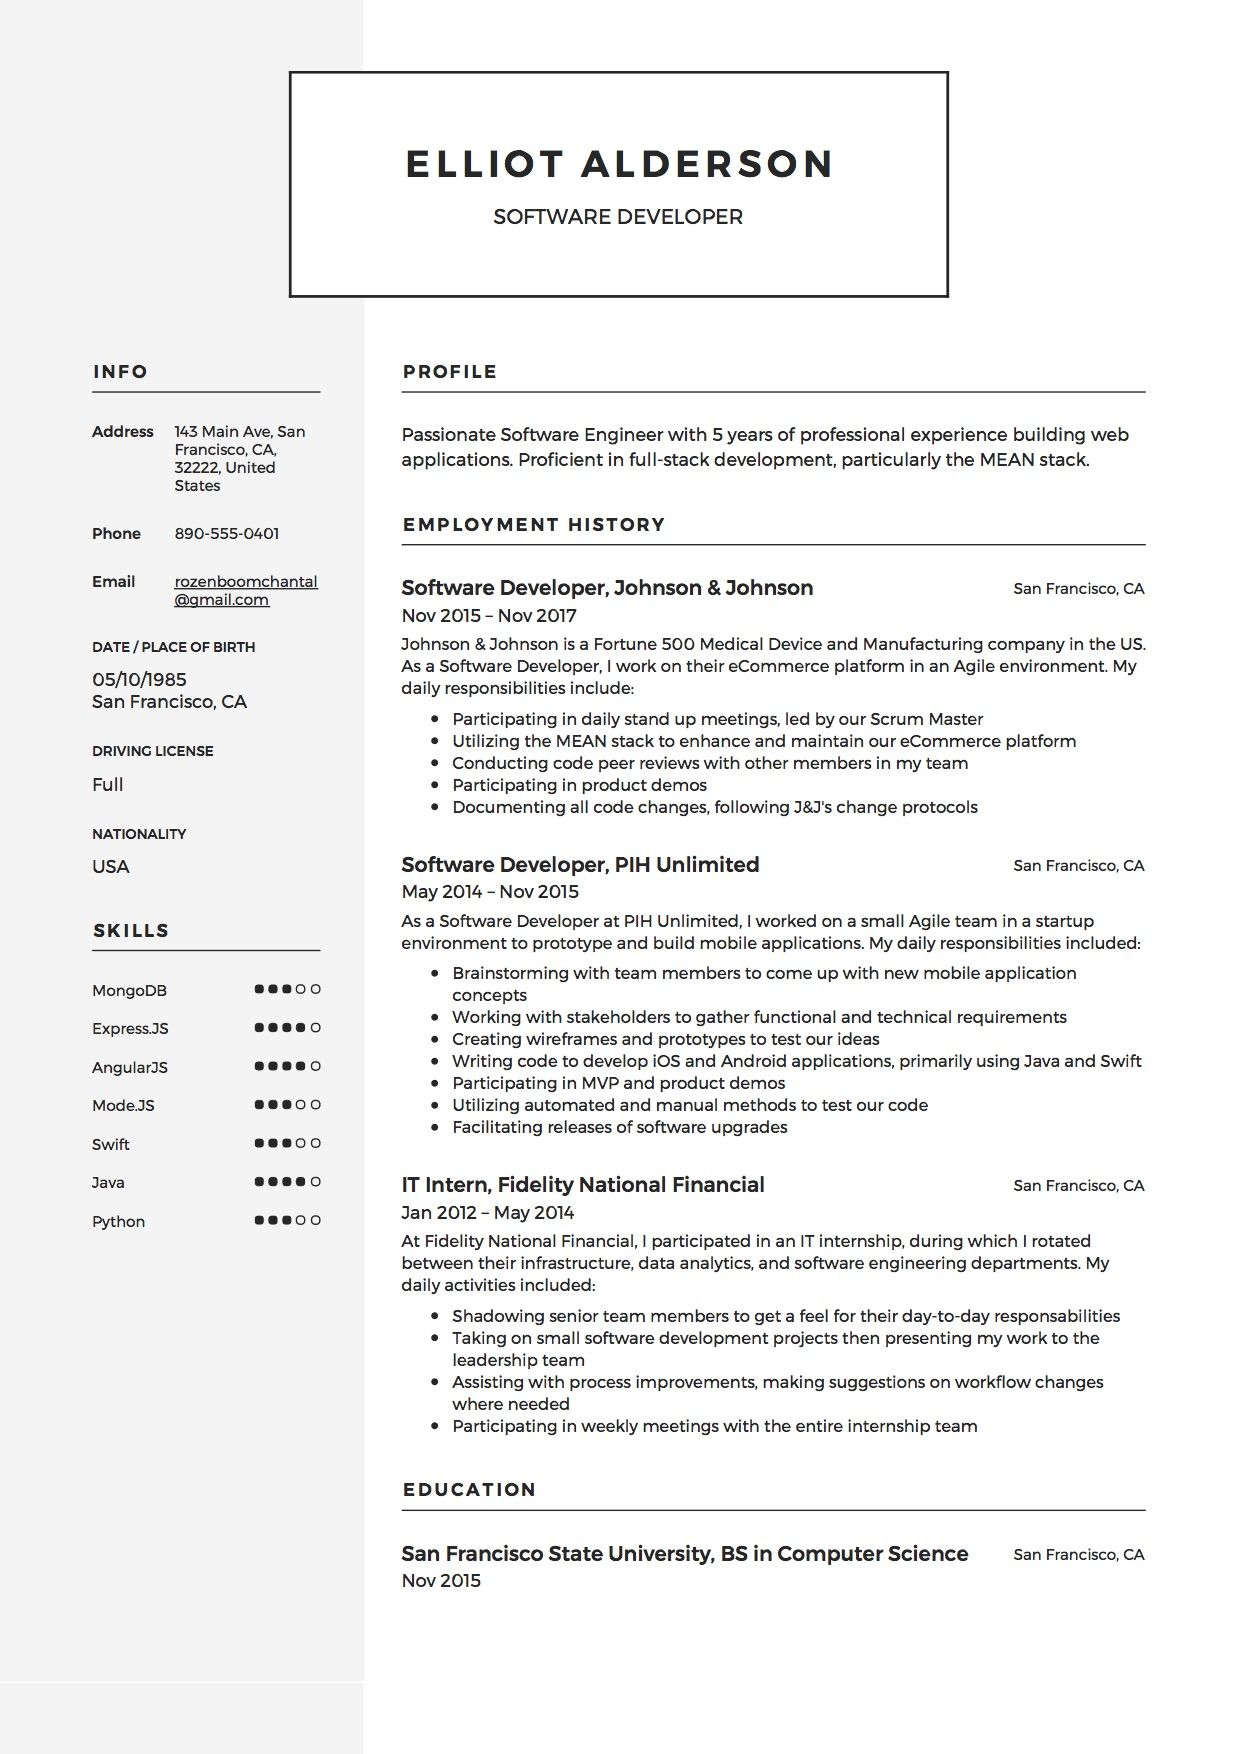 Guide Software Developer Resume [+12 Samples] Software